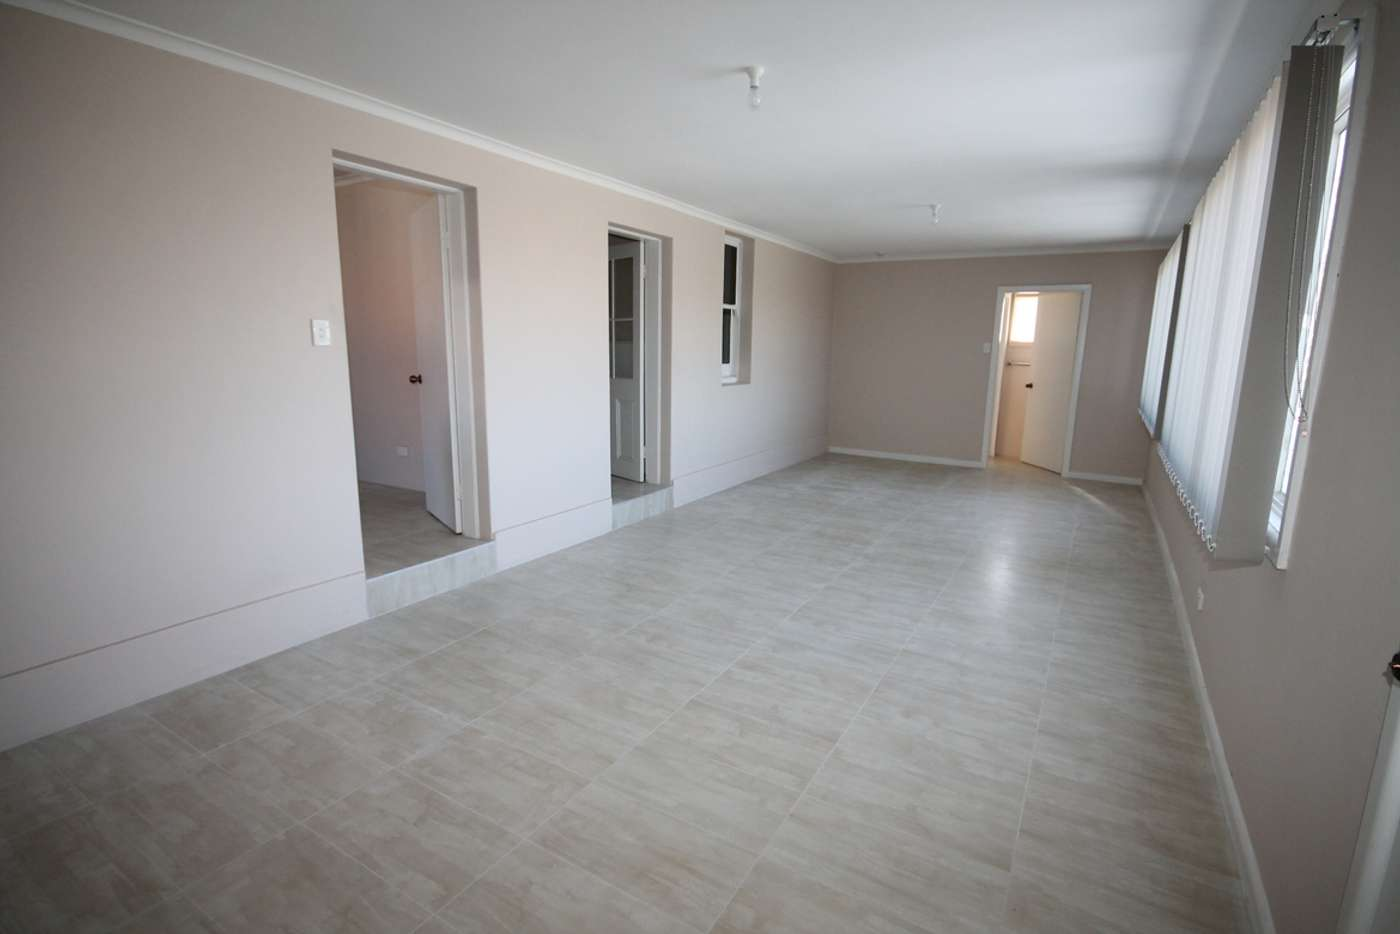 Seventh view of Homely house listing, 5 Wild Street, Reservoir VIC 3073